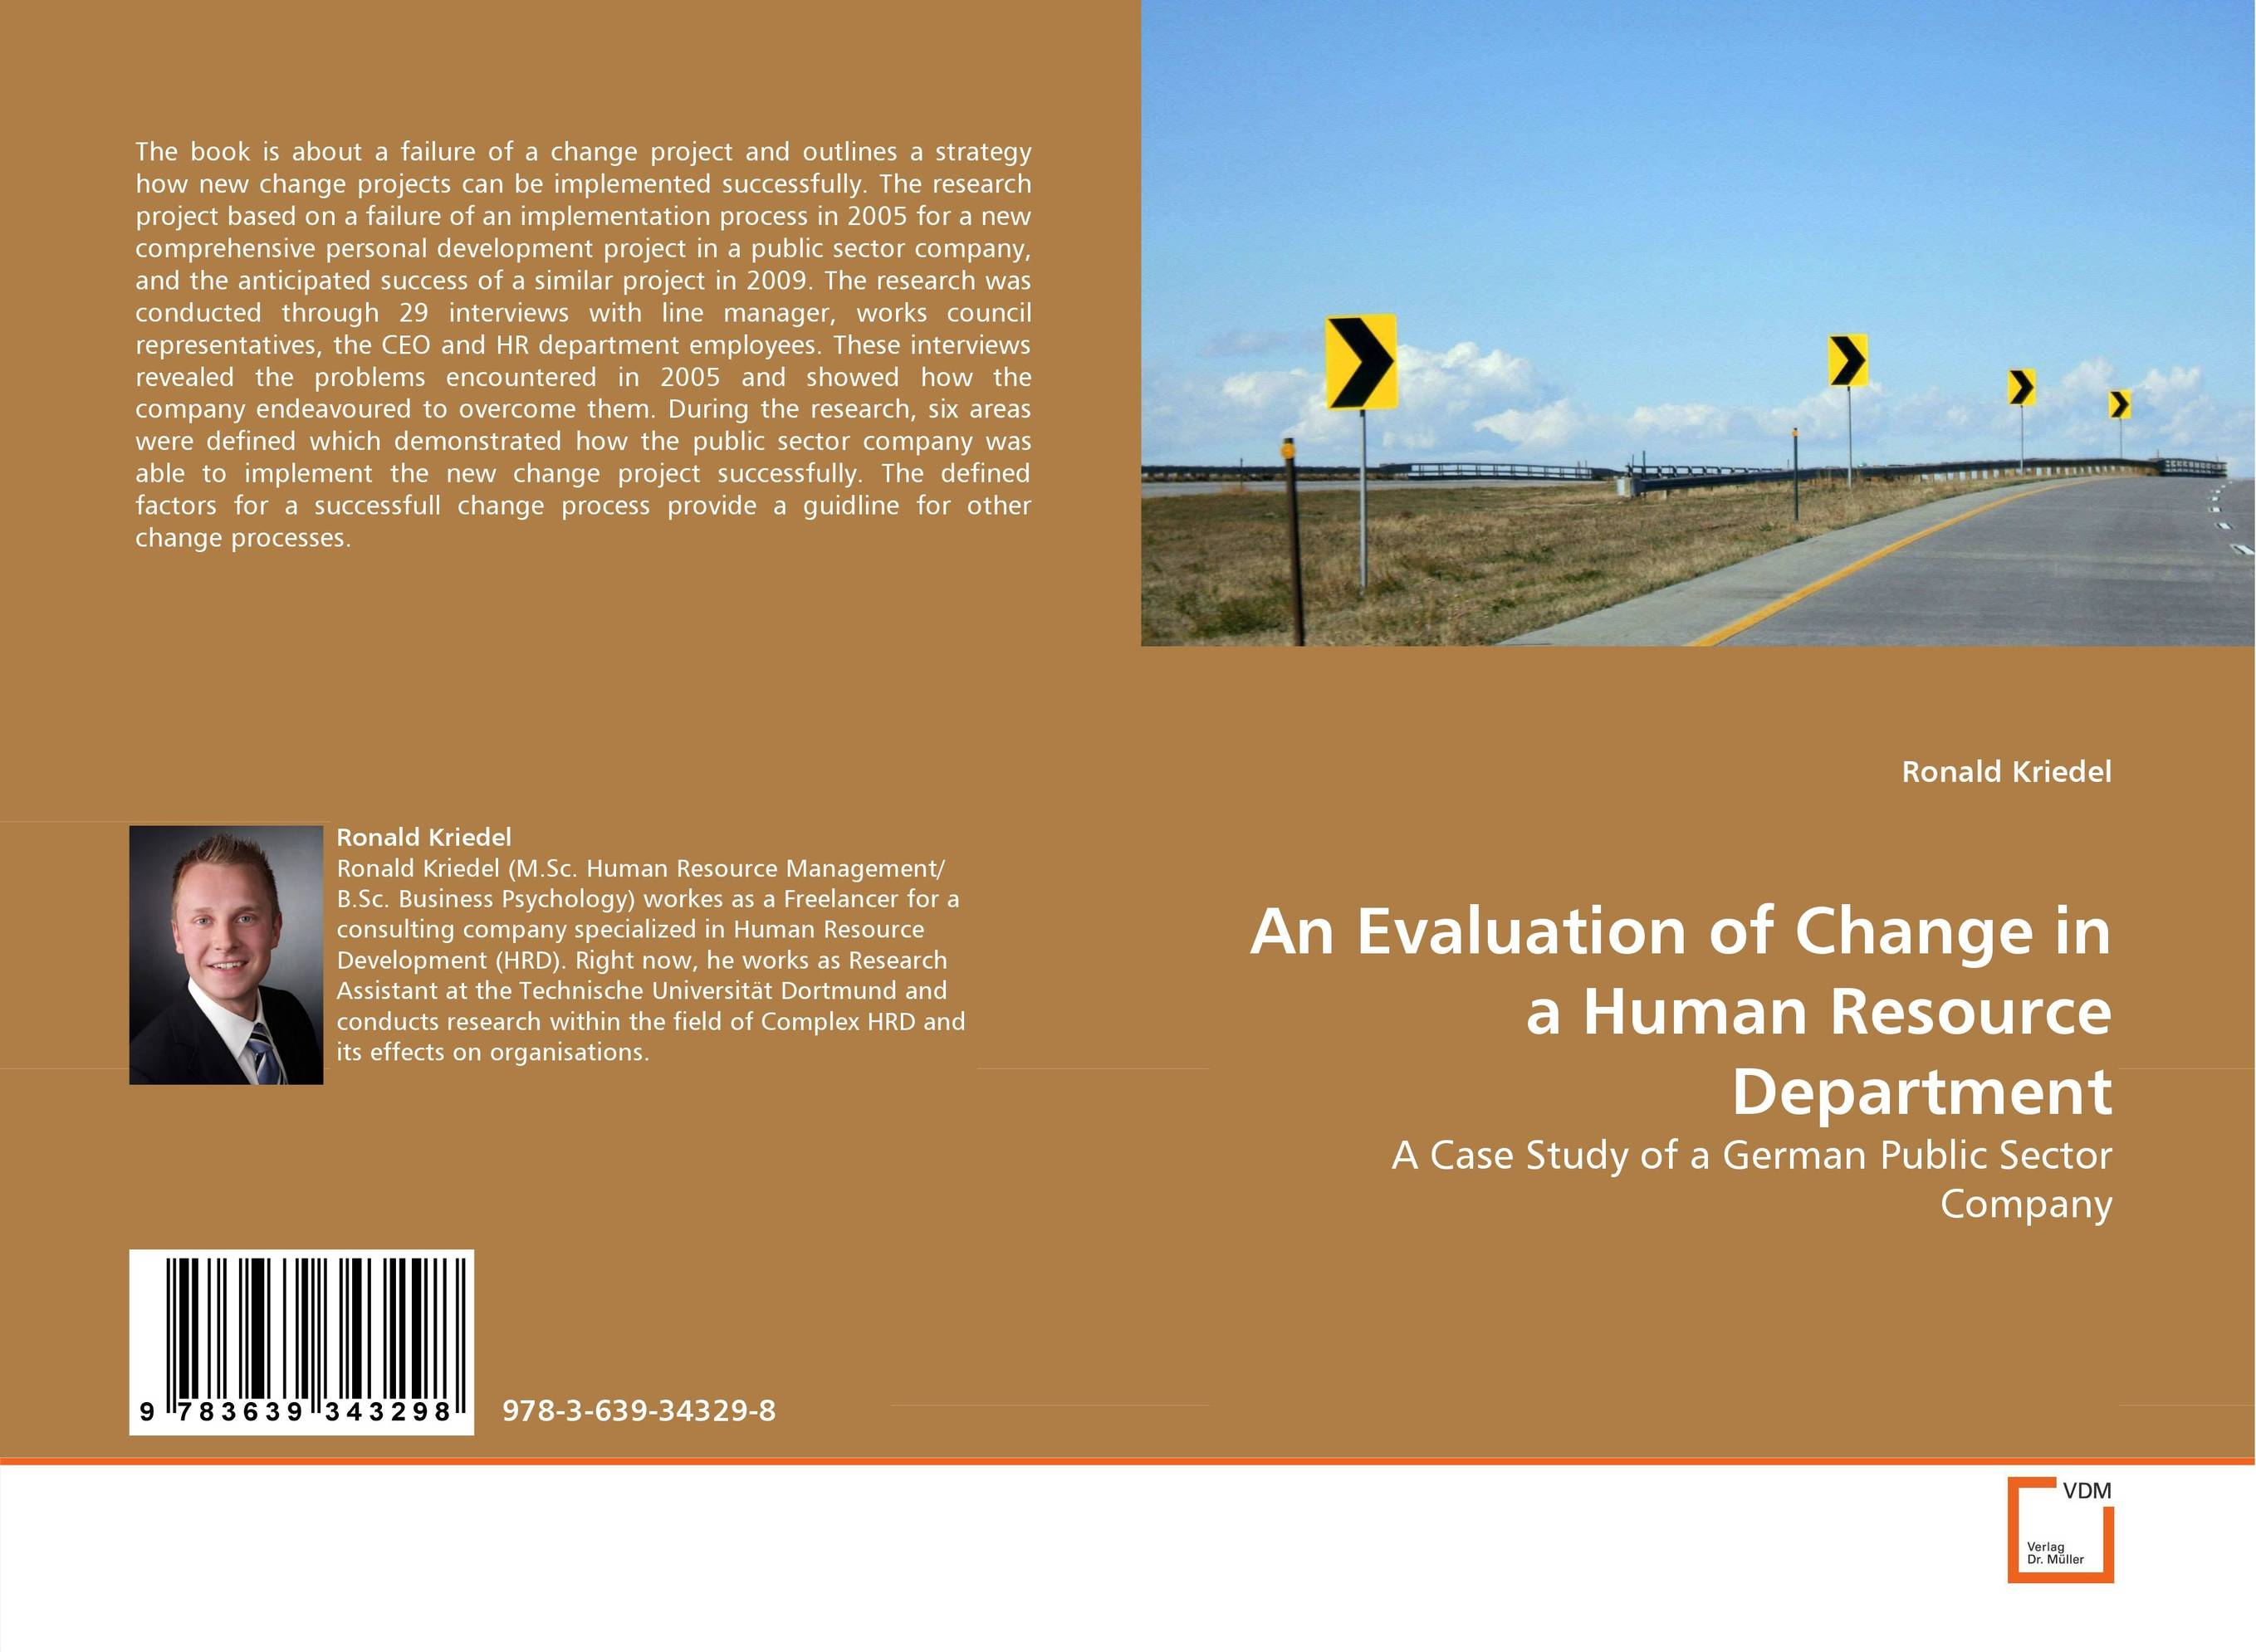 An Evaluation of Change in a Human Resource Department